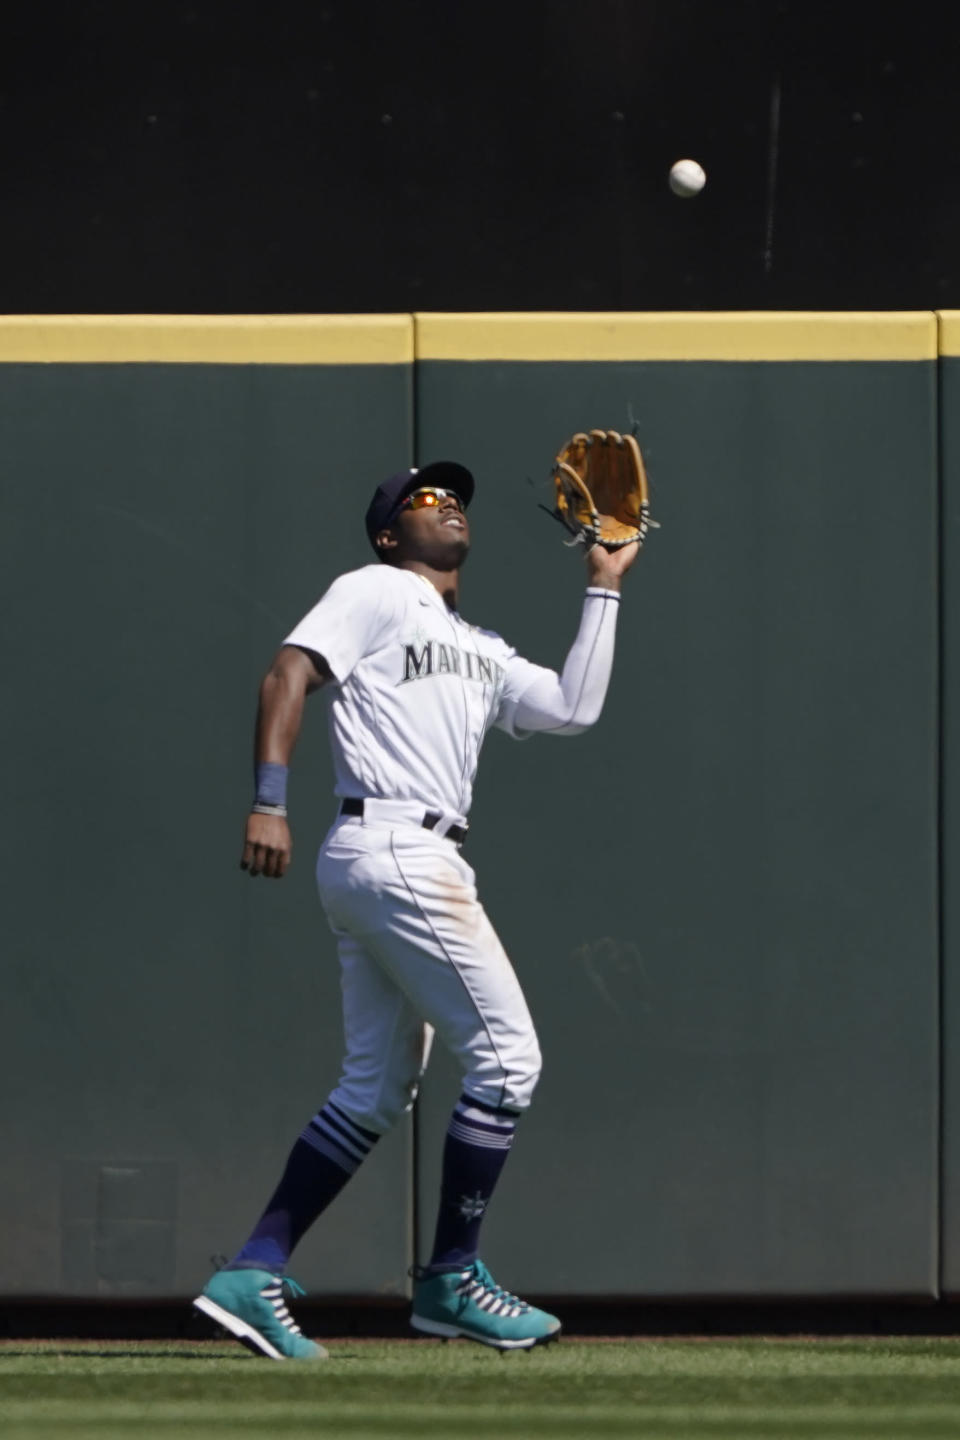 Seattle Mariners center fielder Kyle Lewis catches a fly ball from Los Angeles Dodgers' Will Smith in the fourth inning of a baseball game Tuesday, April 20, 2021, in Seattle. (AP Photo/Ted S. Warren)